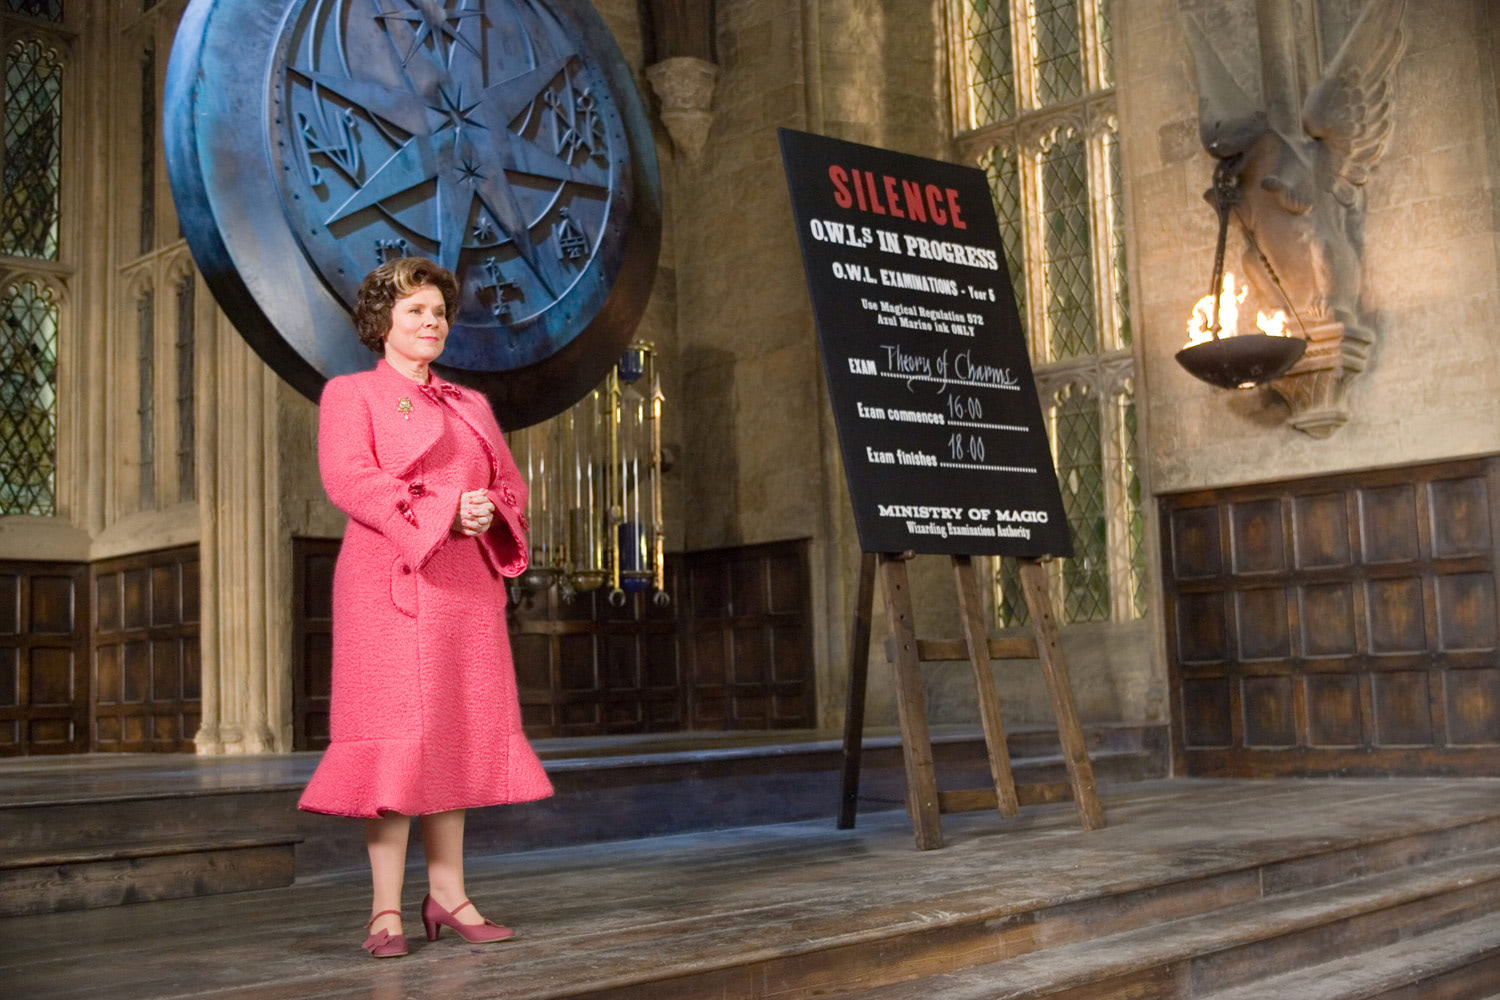 Umbridge watches over O.W.L exams